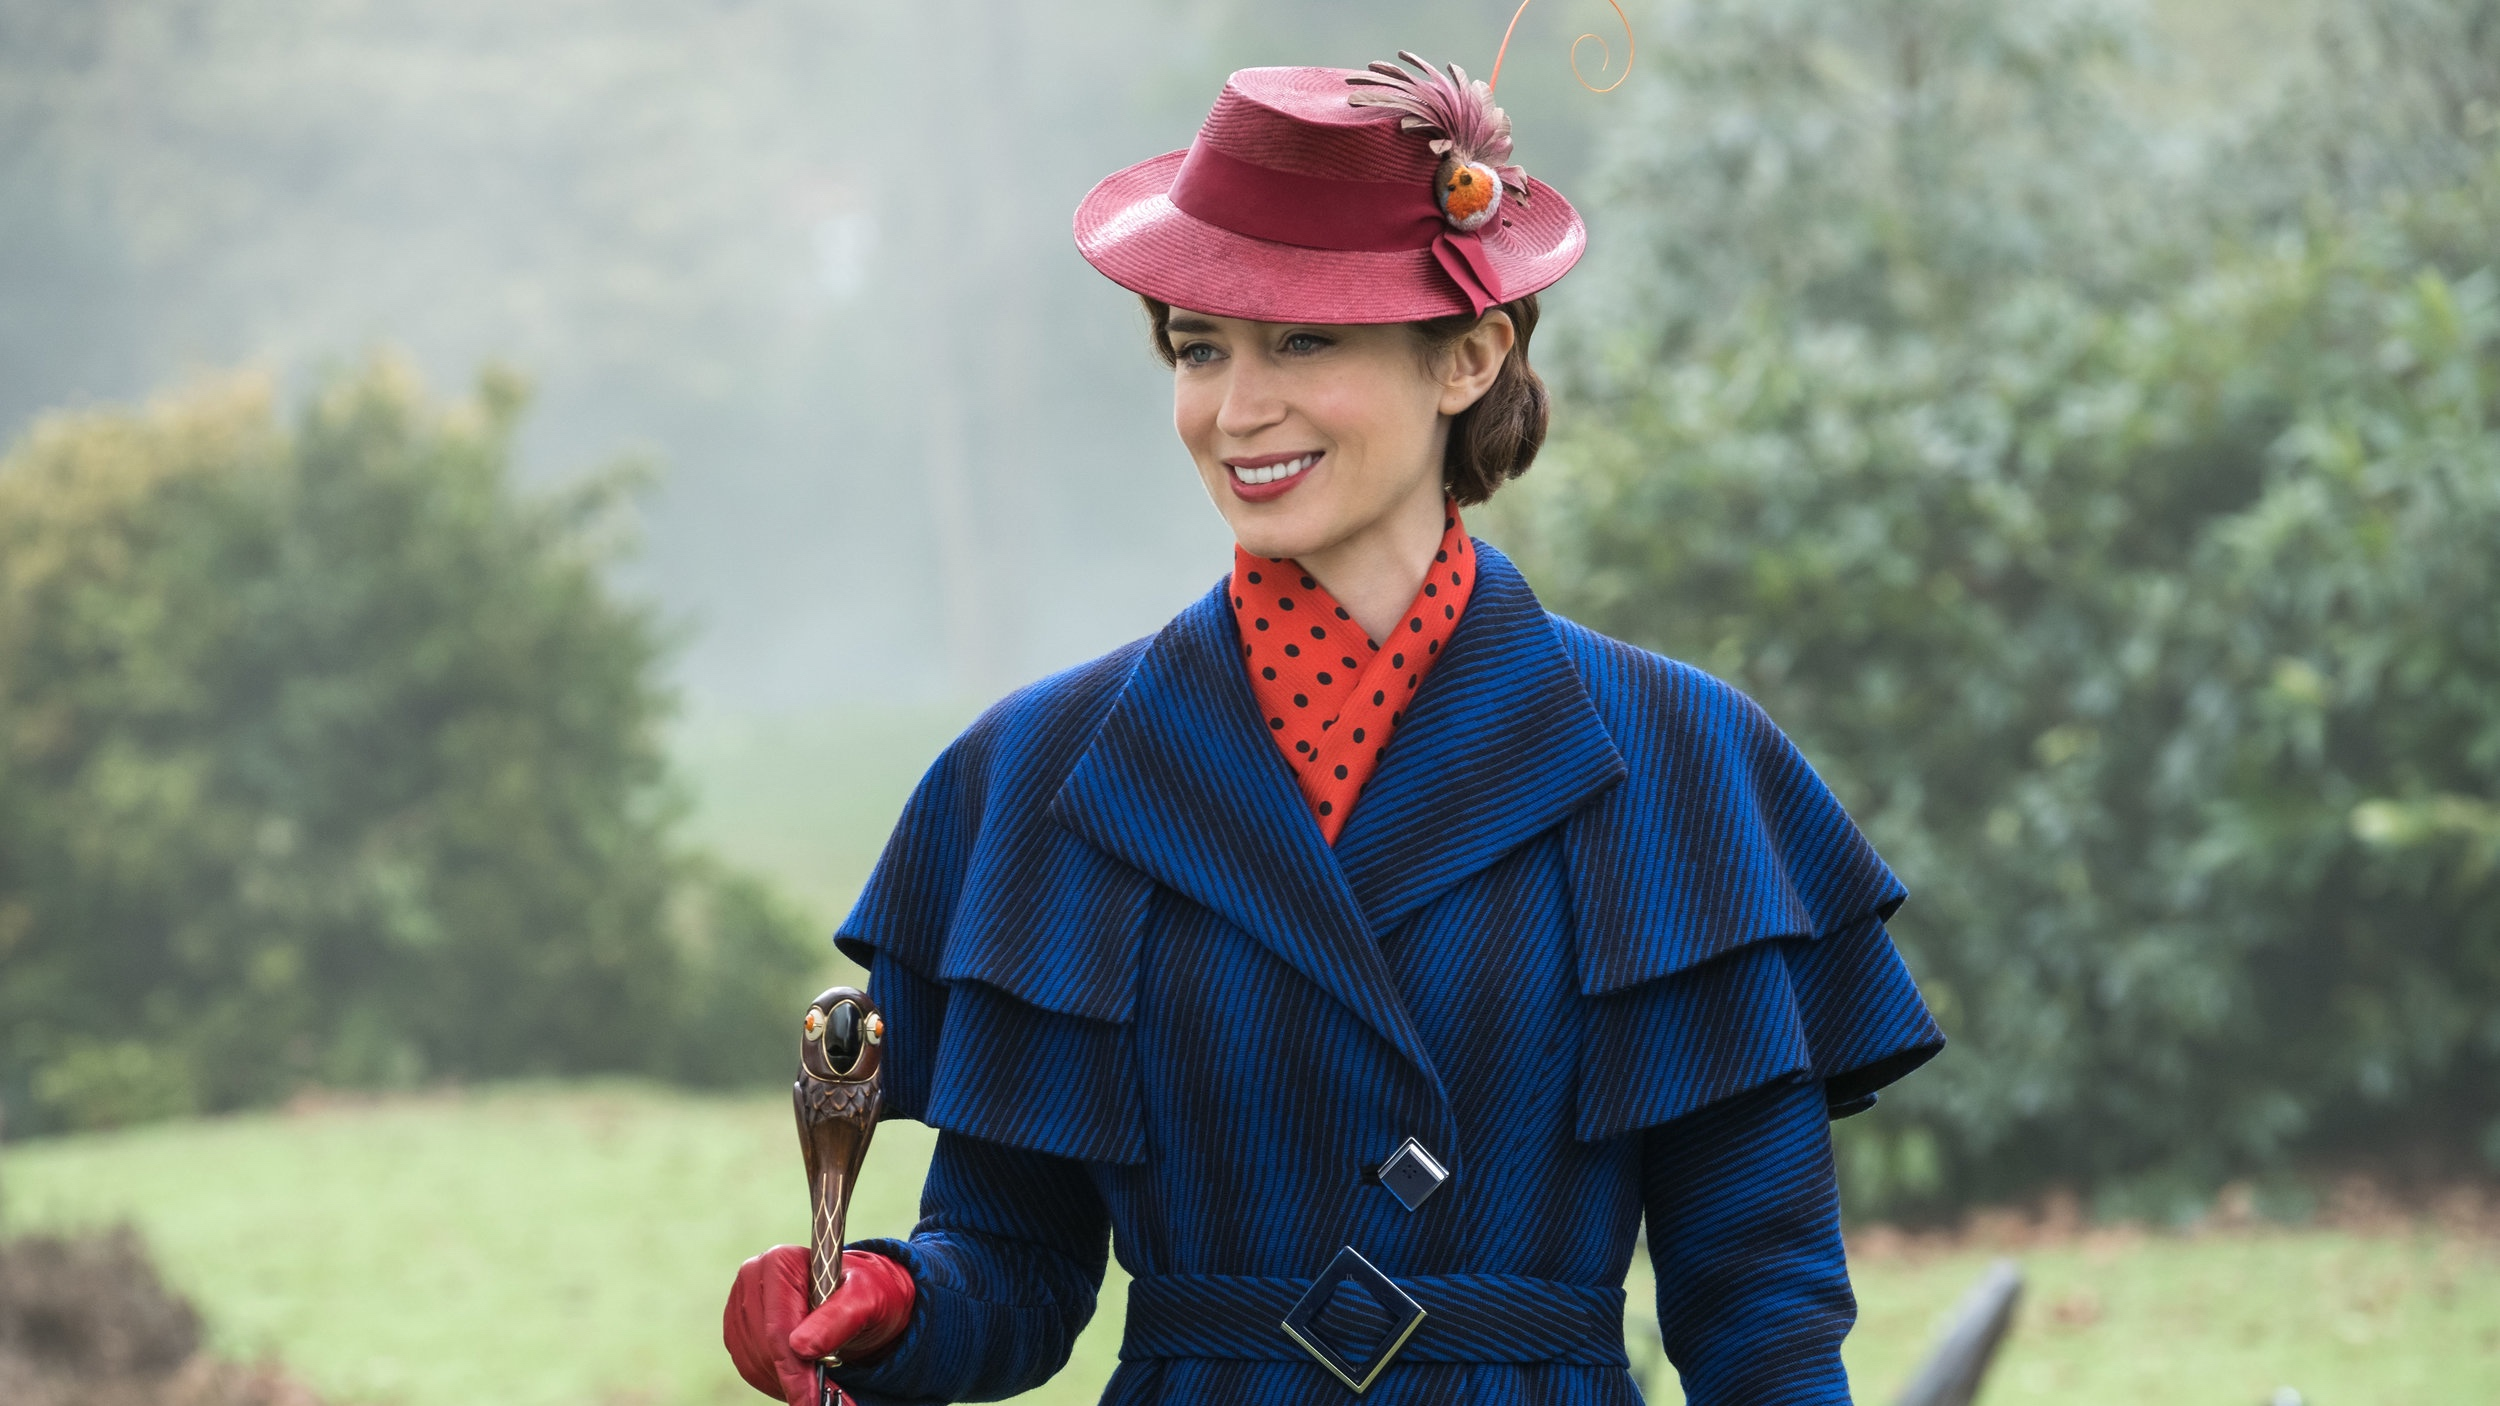 Emily Blunt has picked up the iconic role originally brough to life by Julie Andrews.